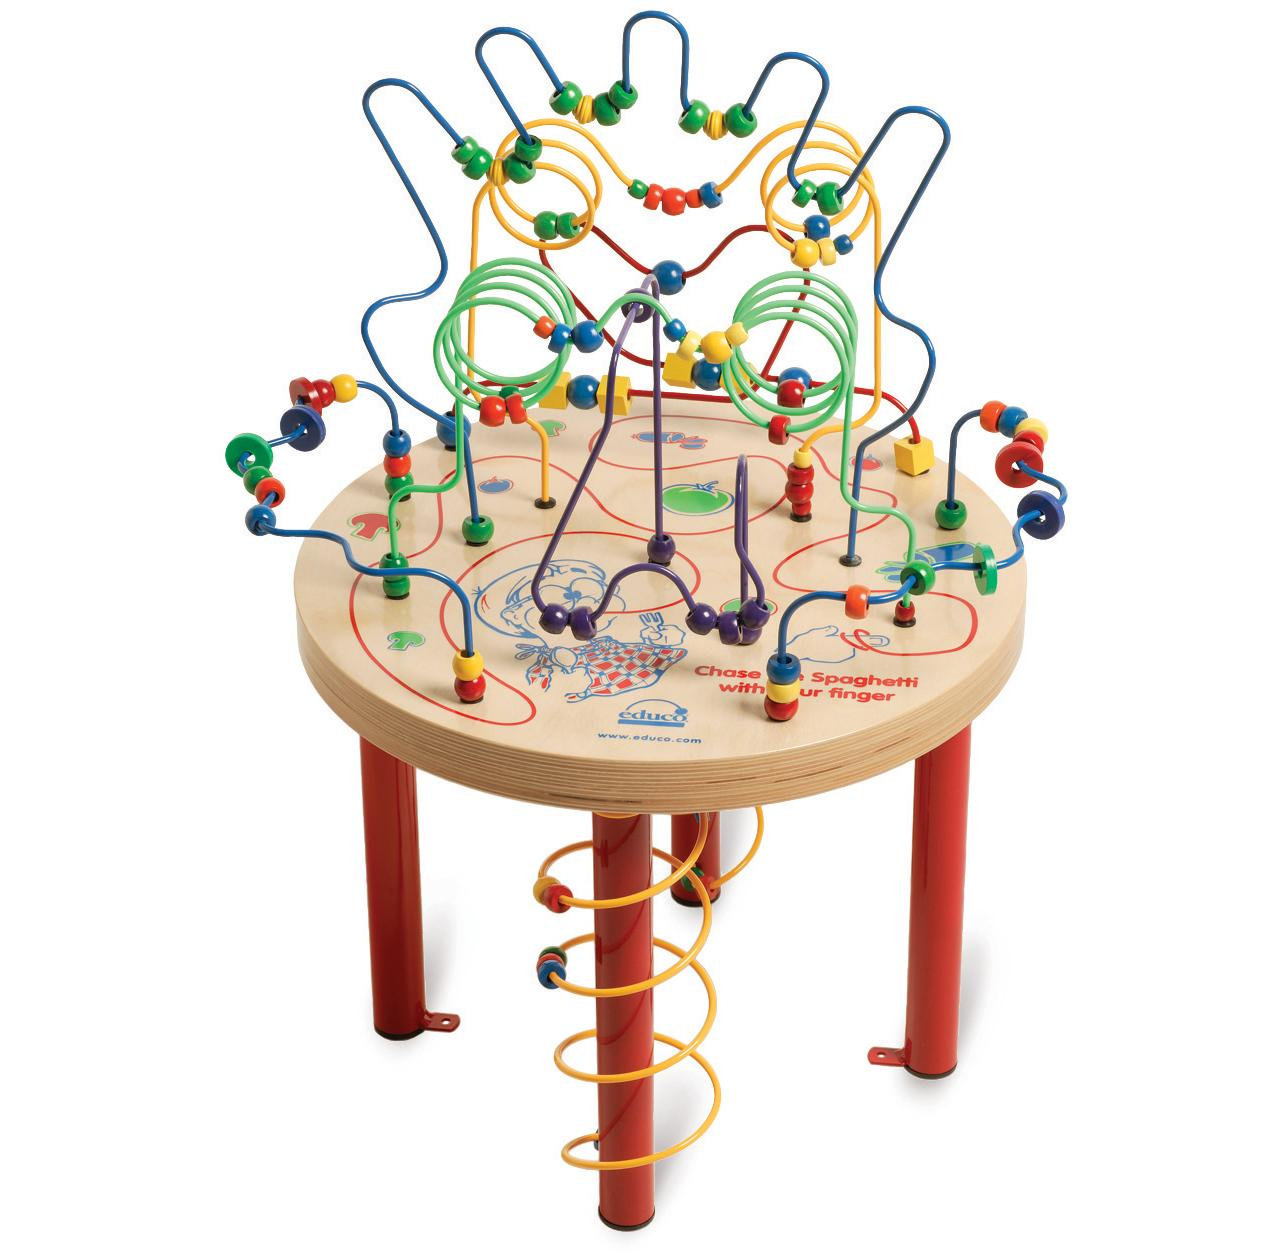 hape funny face kid's wooden bead maze hape amazonca toys  games - view larger